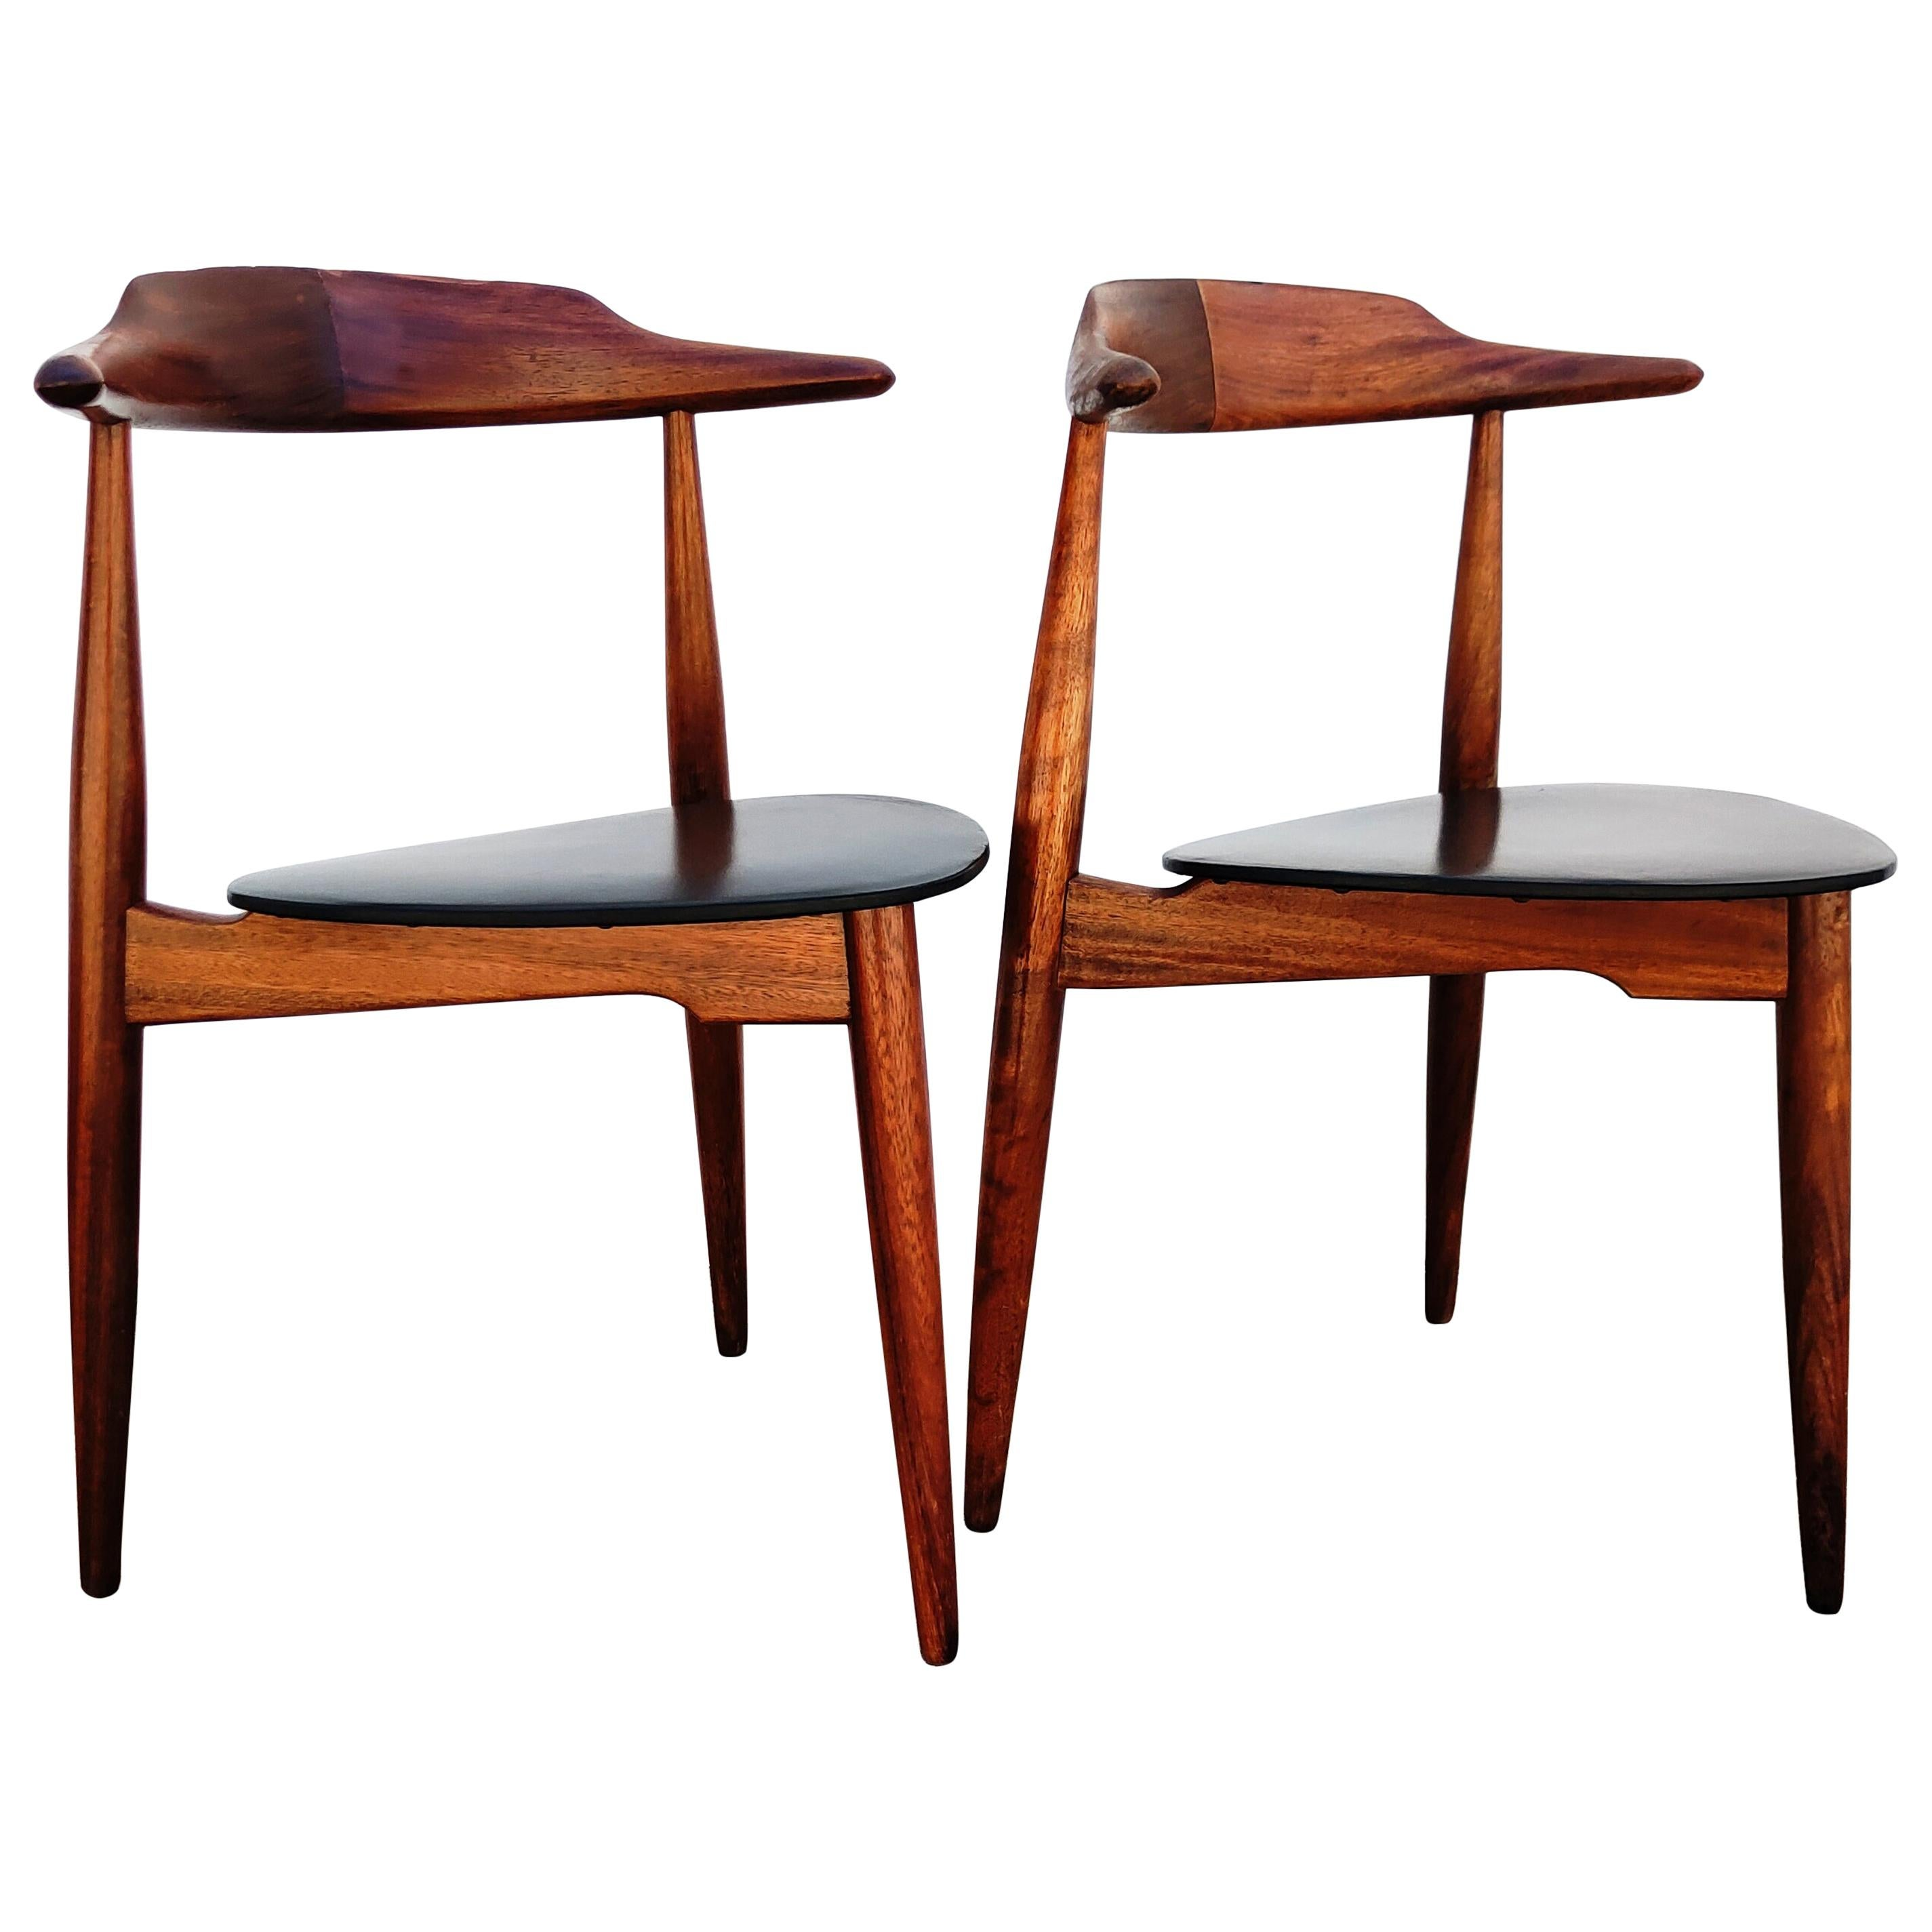 "Set of Two Model Chairs ""Heart FH-4103"" Designed by Hans J. Wegner, 1950s"